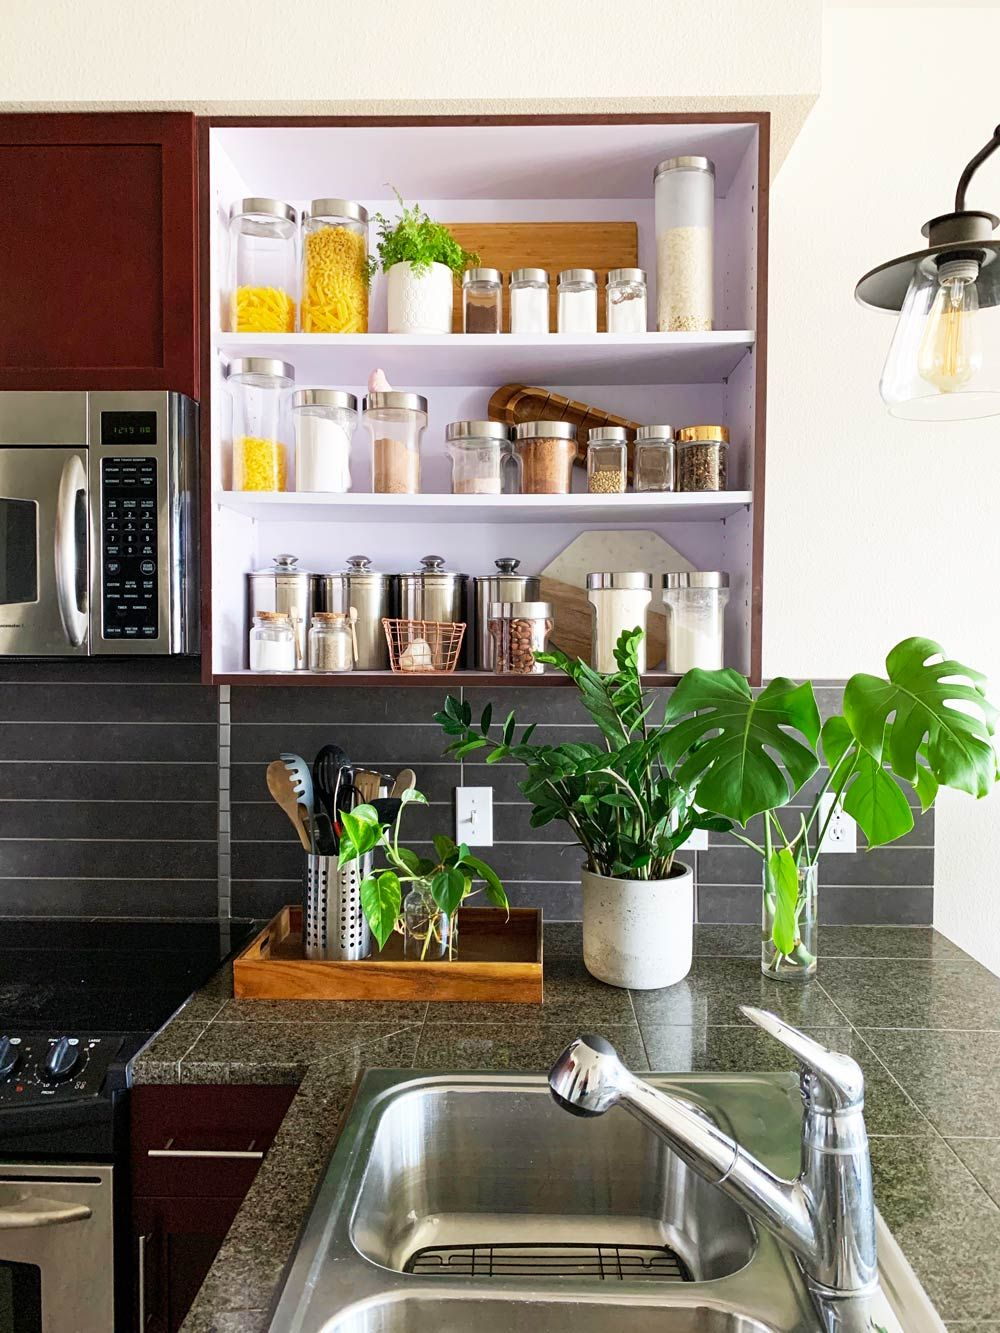 Easy One Day Diy Kitchen Update Remodel Ideas The Budget Decorator Home Decor Updated